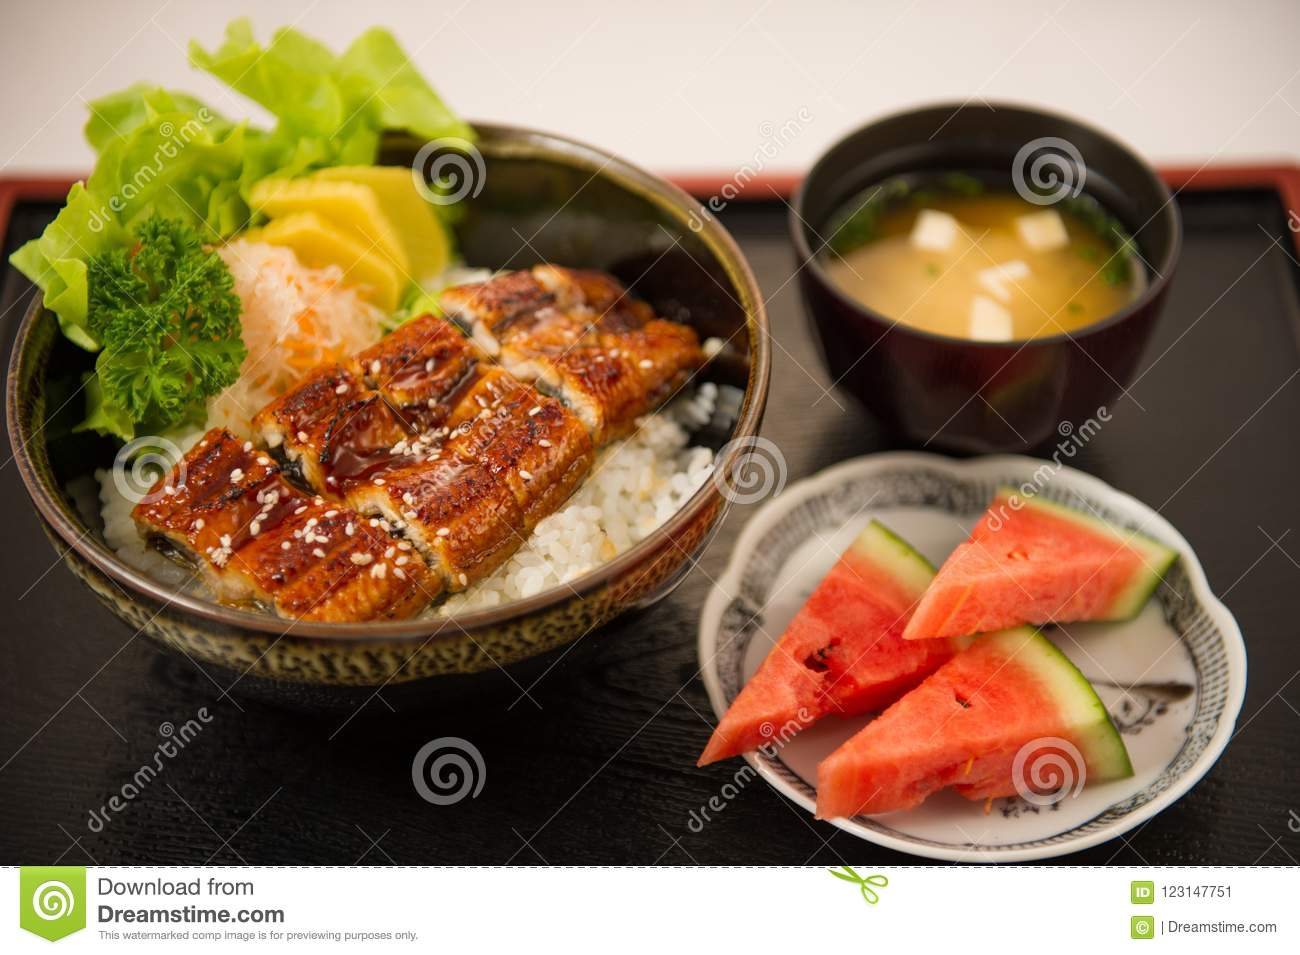 Japanese eel grilled with rice or Unagi don